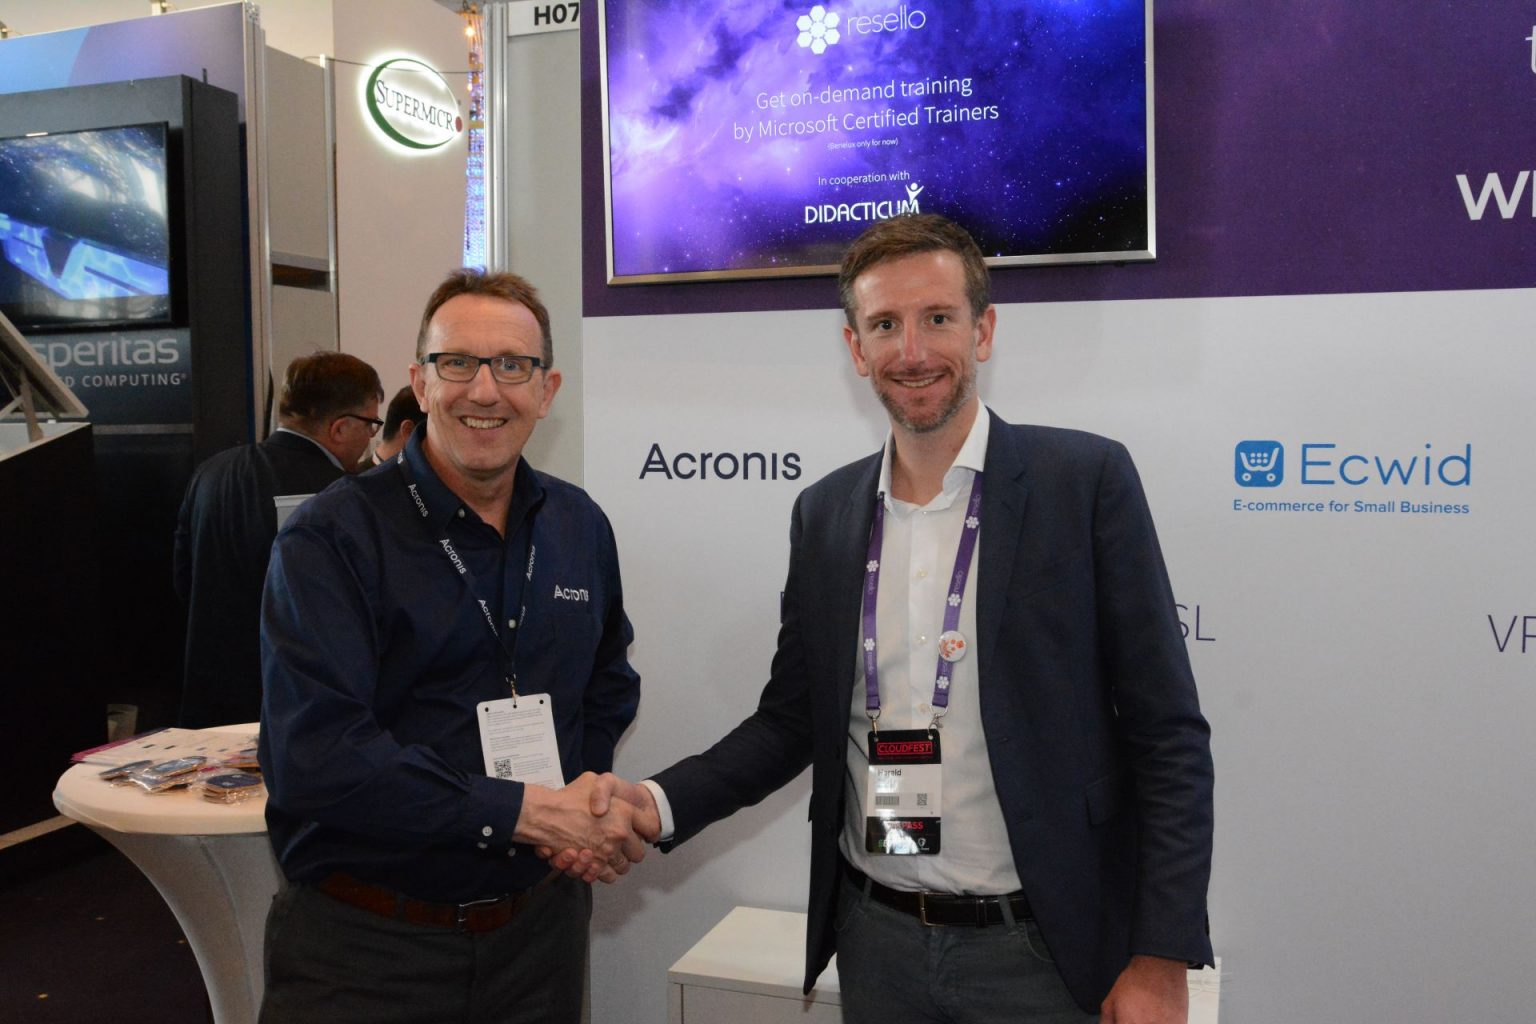 Resello Acronis Cloud Reseller